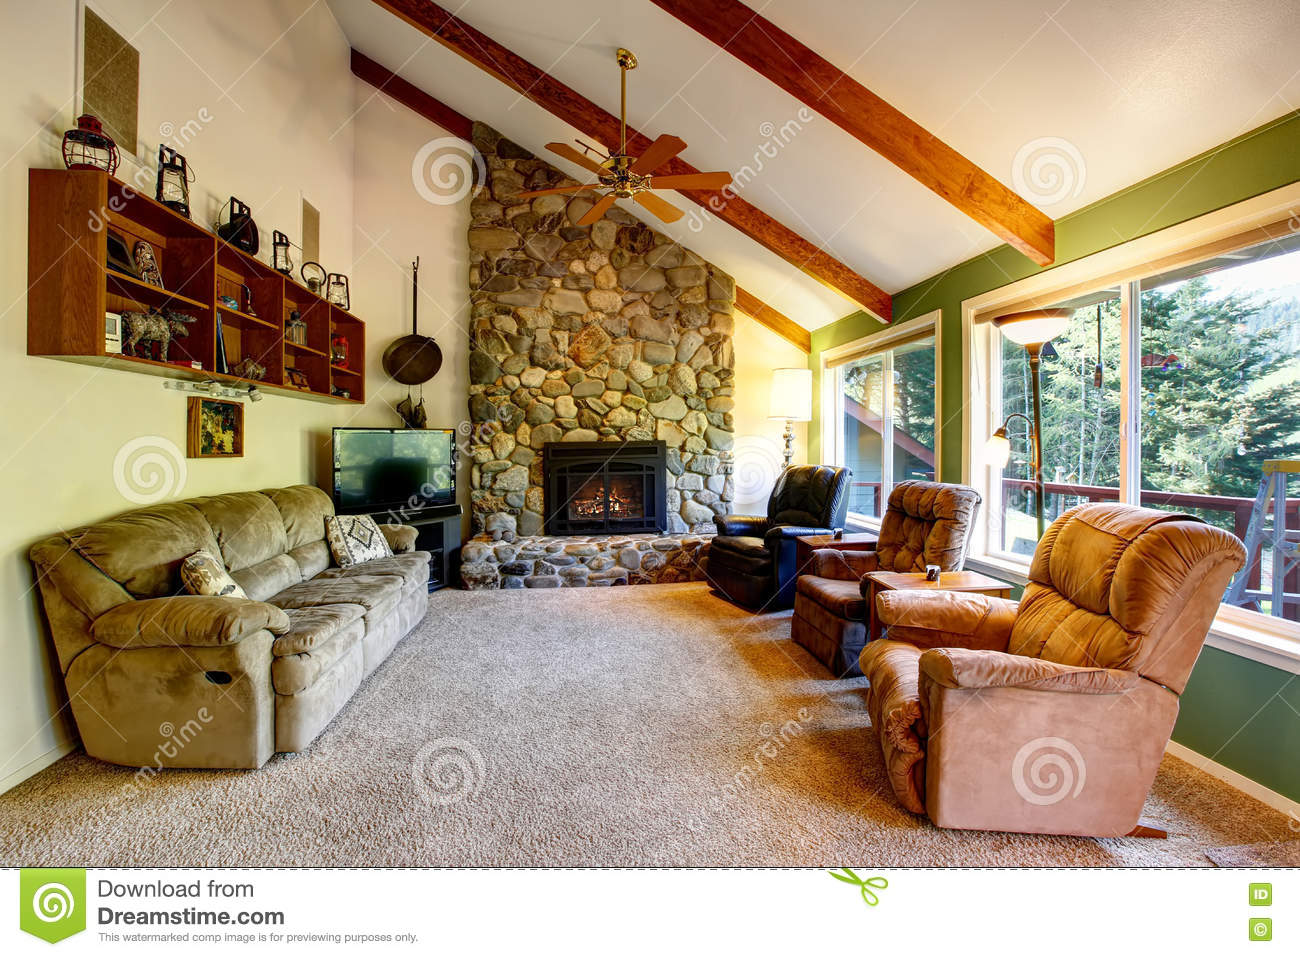 Grand Int Rieur De Salon Dans La Maison De Campagne Am Ricaine Image Stock Image 74405159